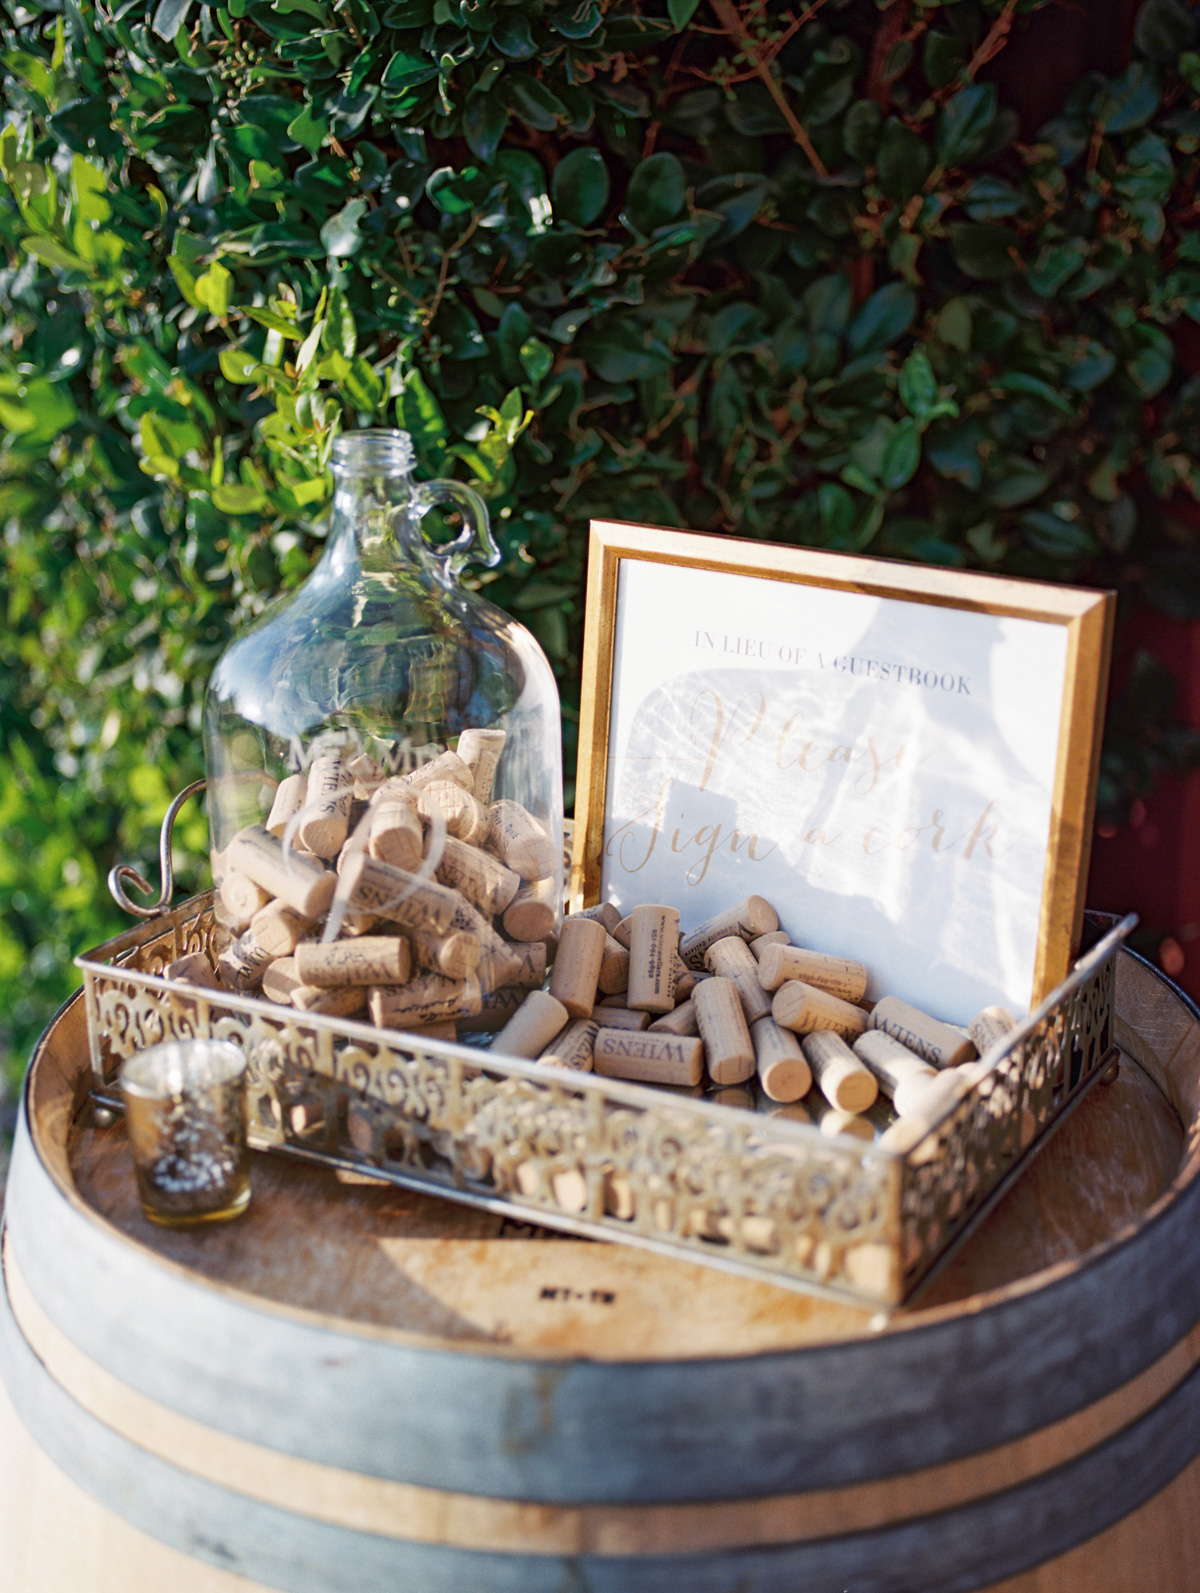 Wine Cork Guest book   Harrison & Jocelyne's gorgeous Temecula wedding day at Wiens Family Cellars captured by Temecula wedding photographers Betsy & John